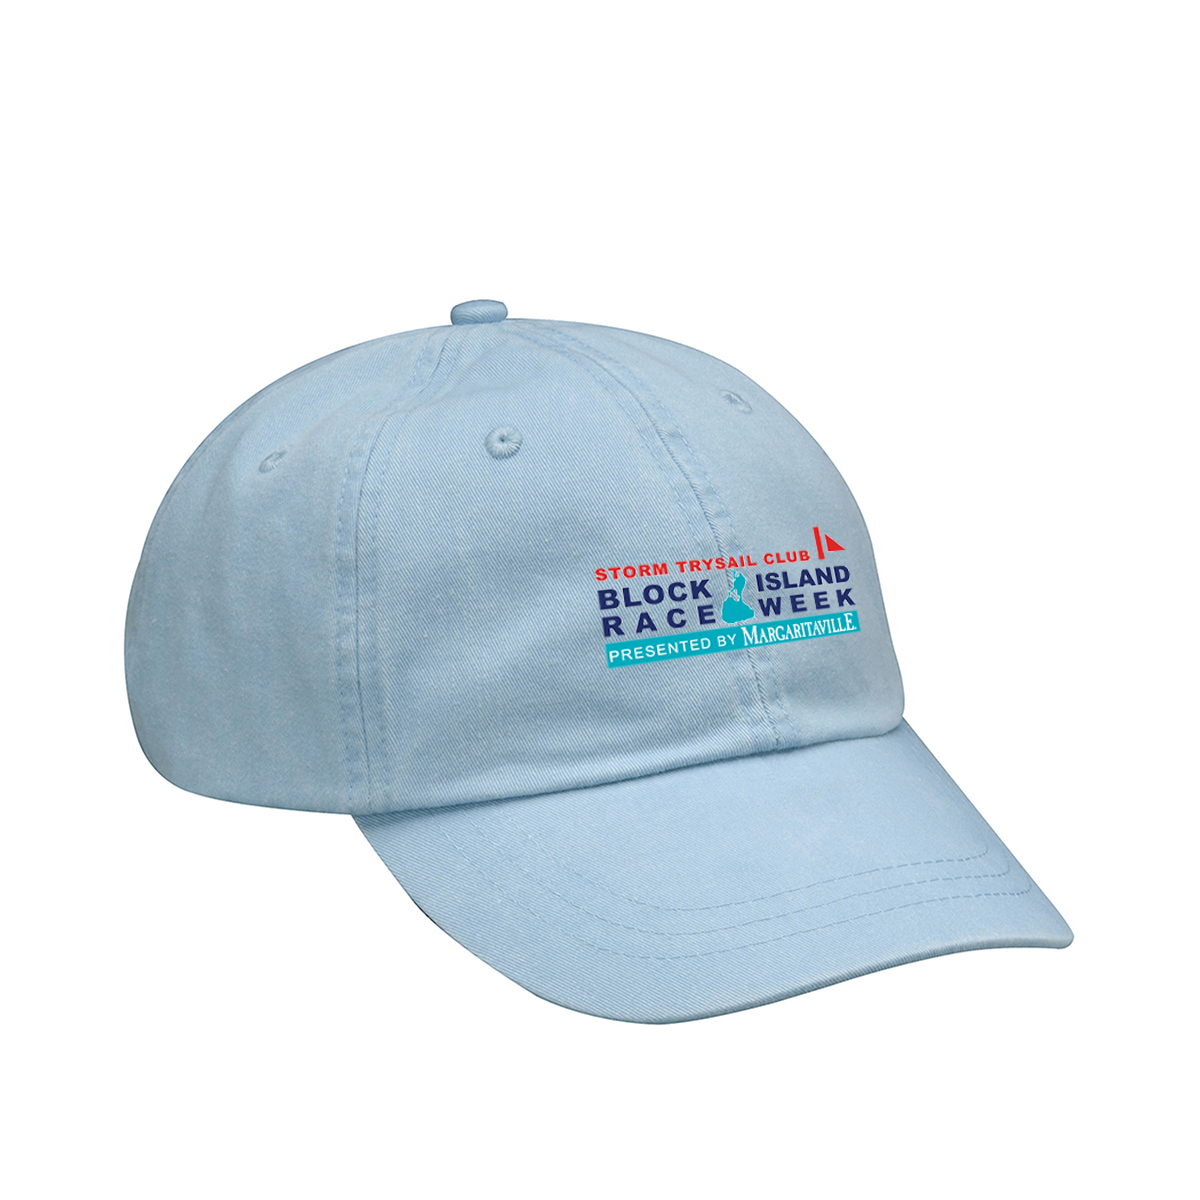 Block Island Race Week 2019 - Adjustable Cap